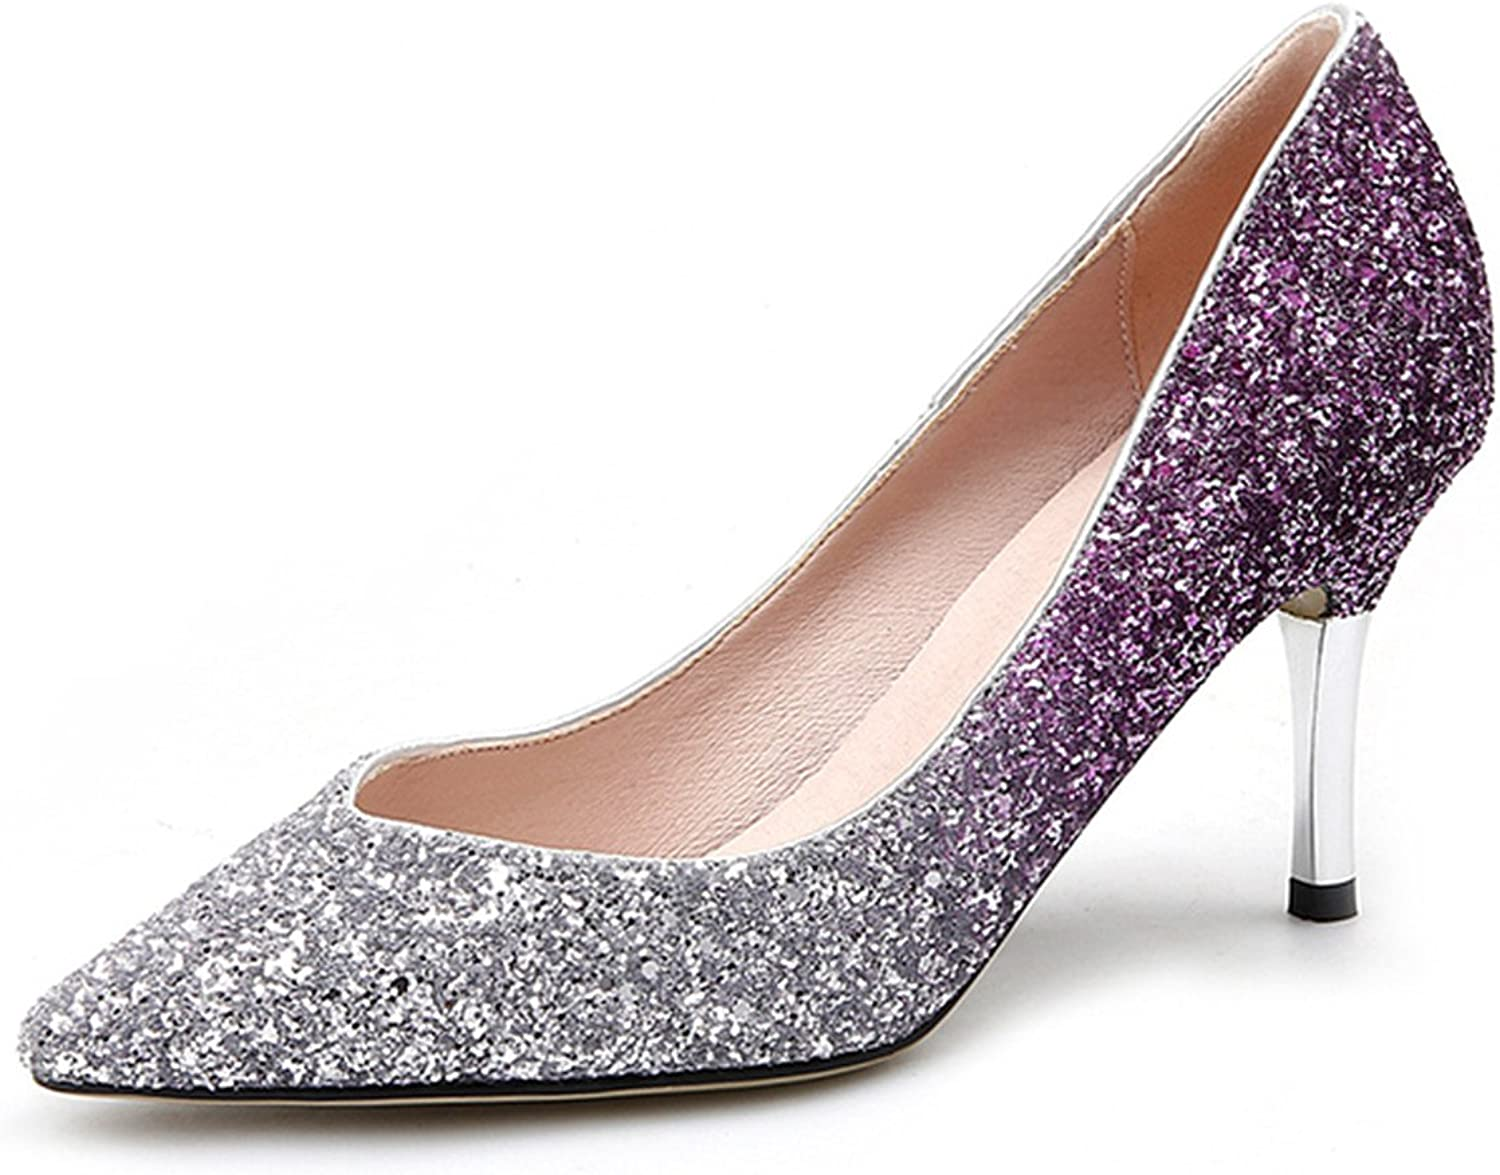 Gome-z shoes Women New Wedding shoes High Heel Pumps Silver Glitter Pointed Toe Stilettos Slip on Party shoes Plus Size 42